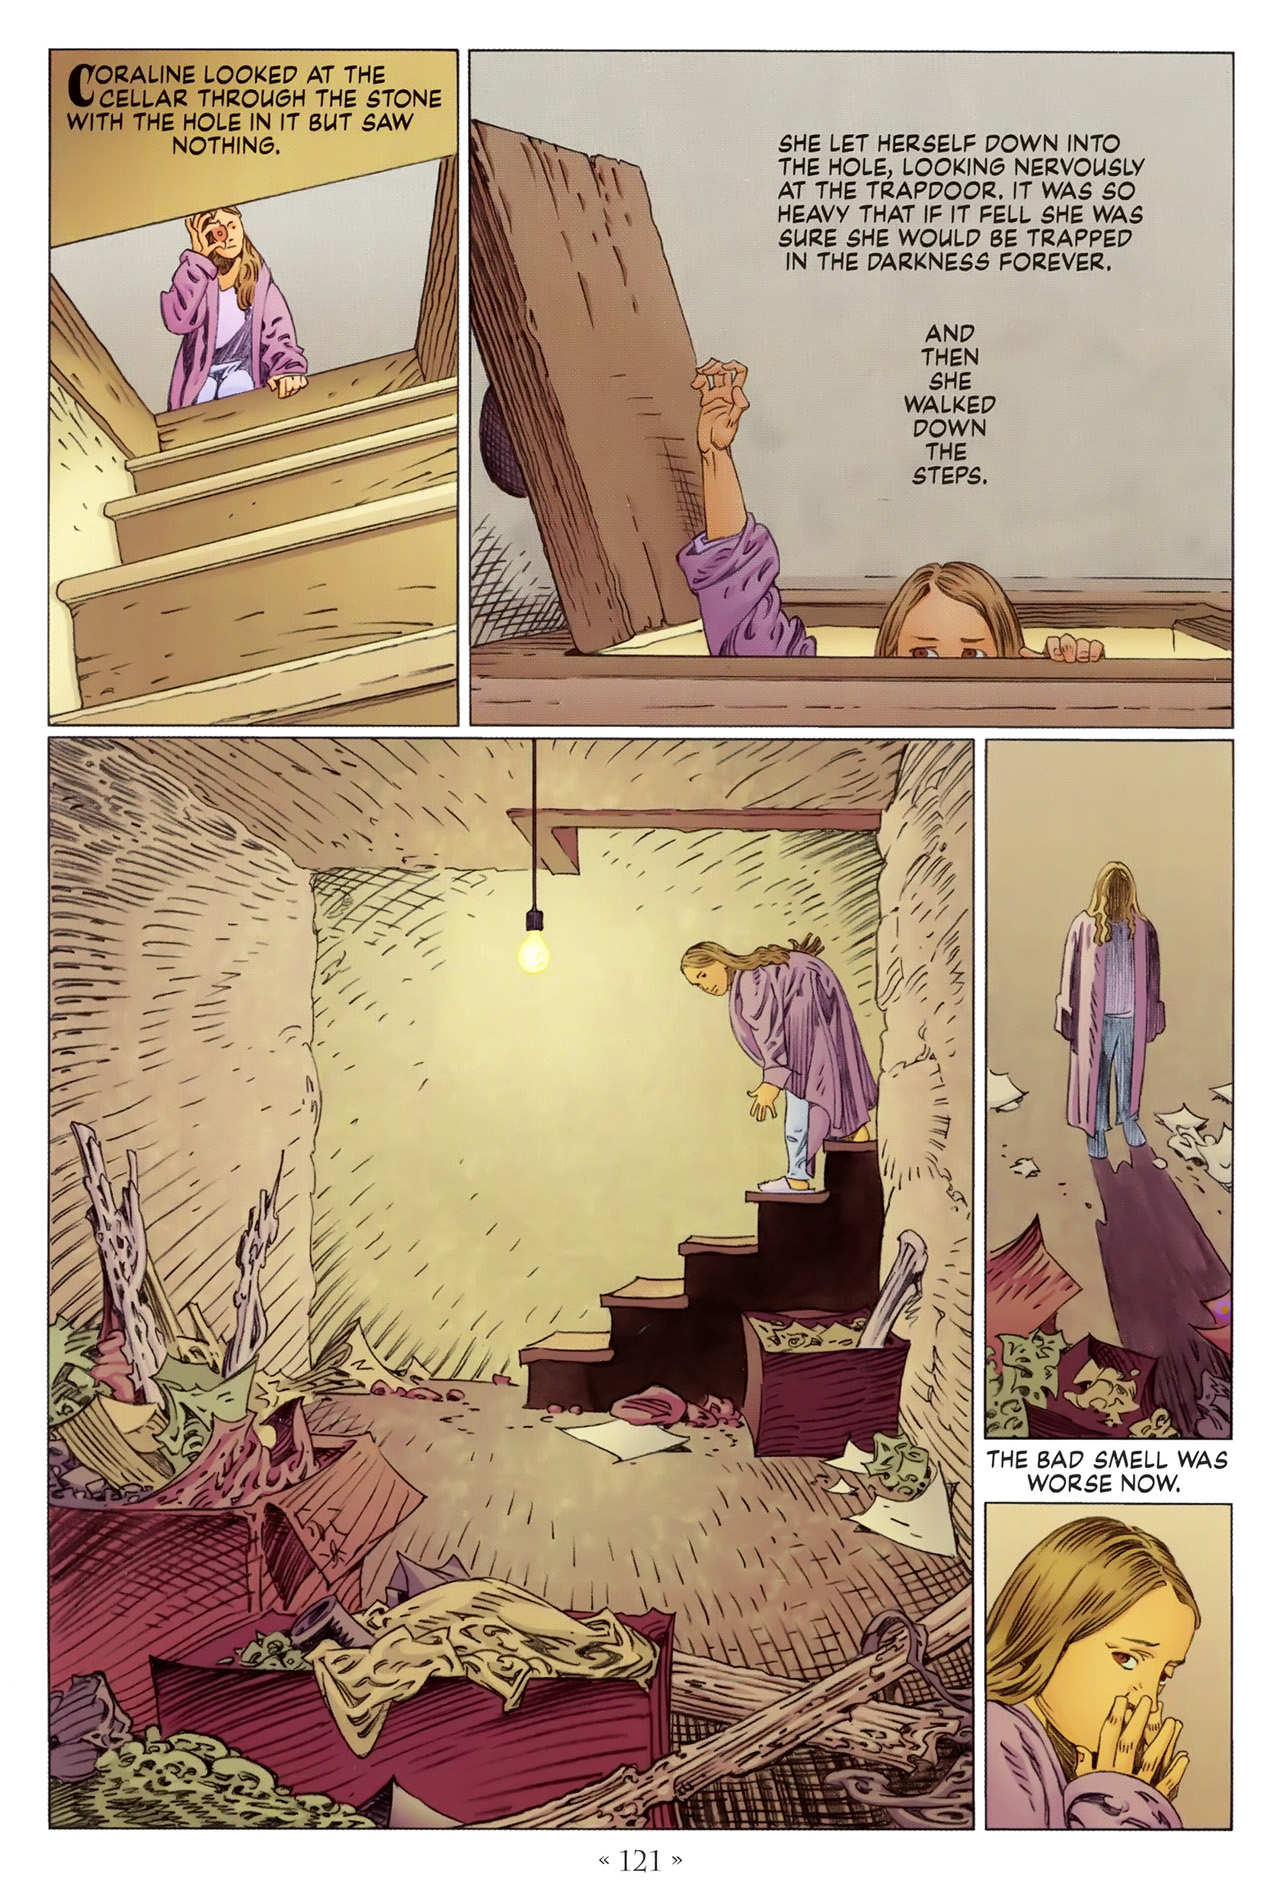 Read online Coraline comic -  Issue #1 - 127